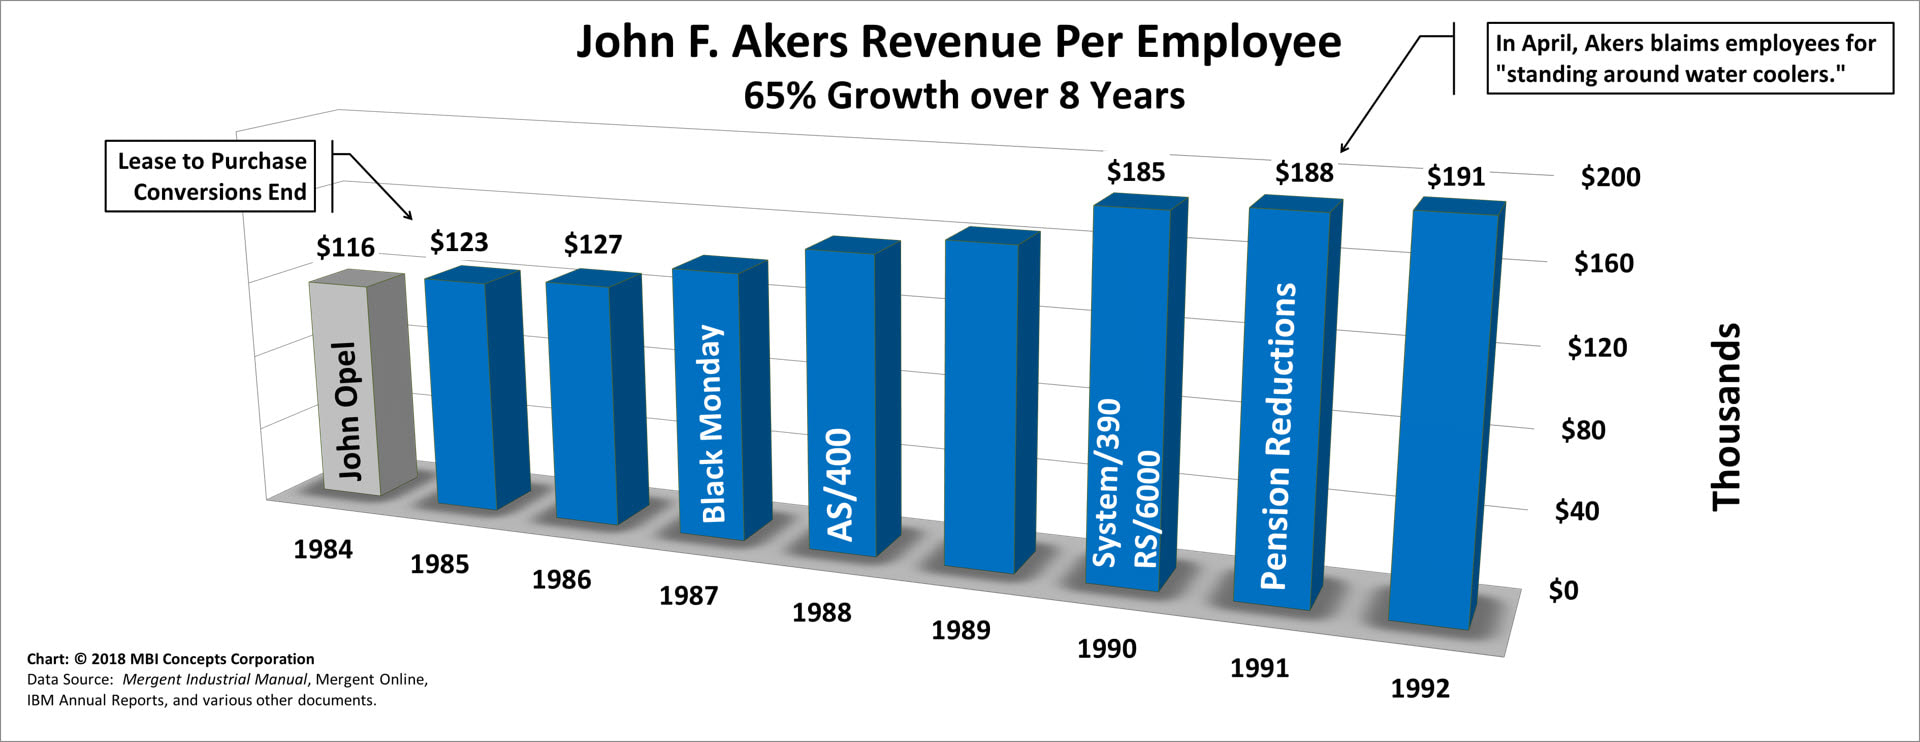 Bar chart of John F. Aker's Yearly Revenue per Employee over his 8 years as IBM's CEO from 1985 to 1992.